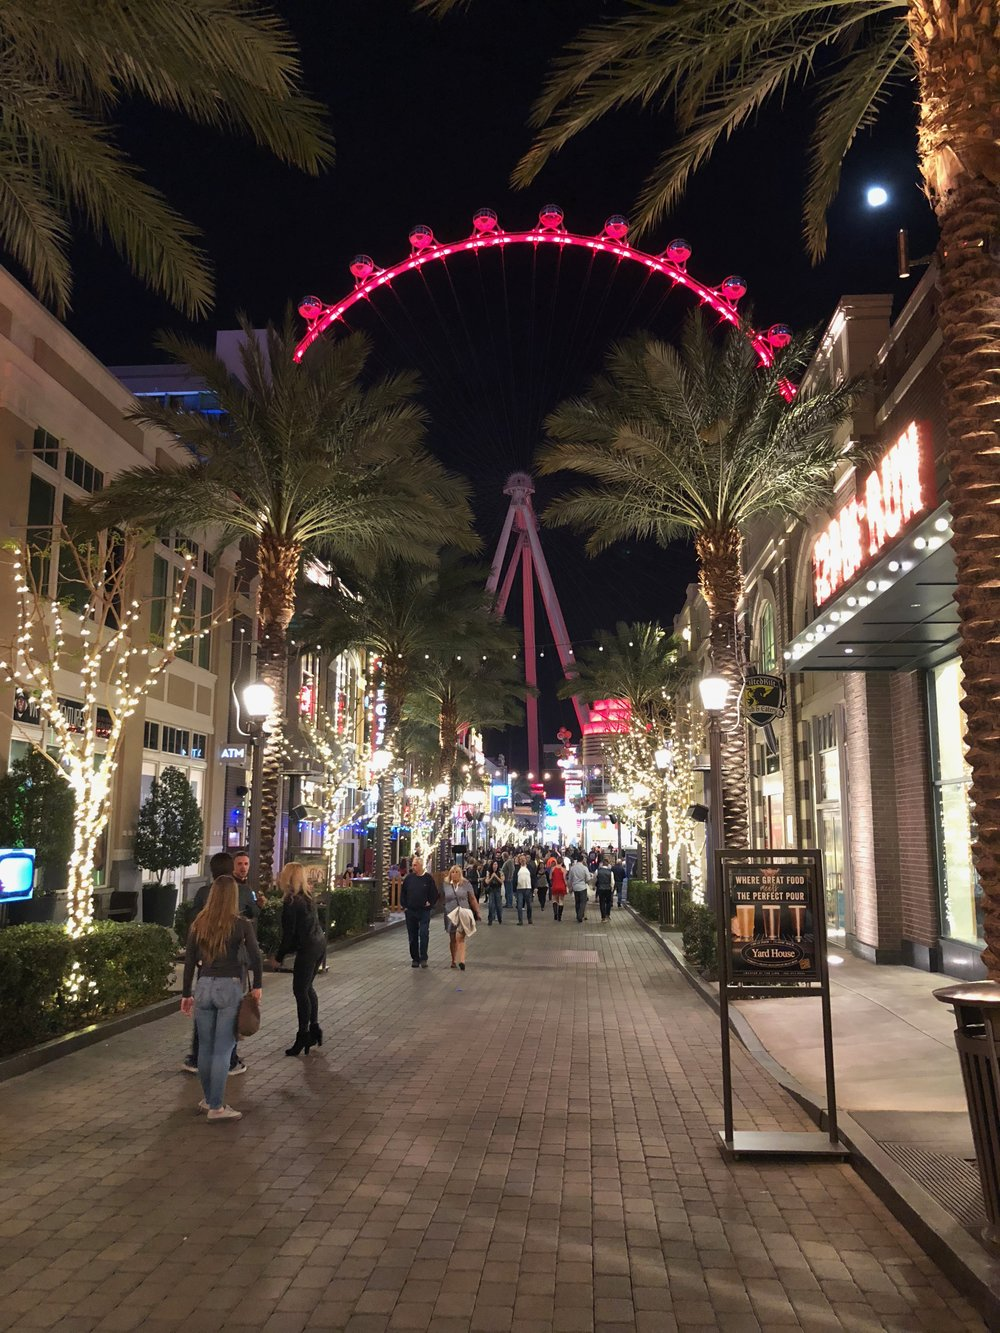 Heading down to the Linq